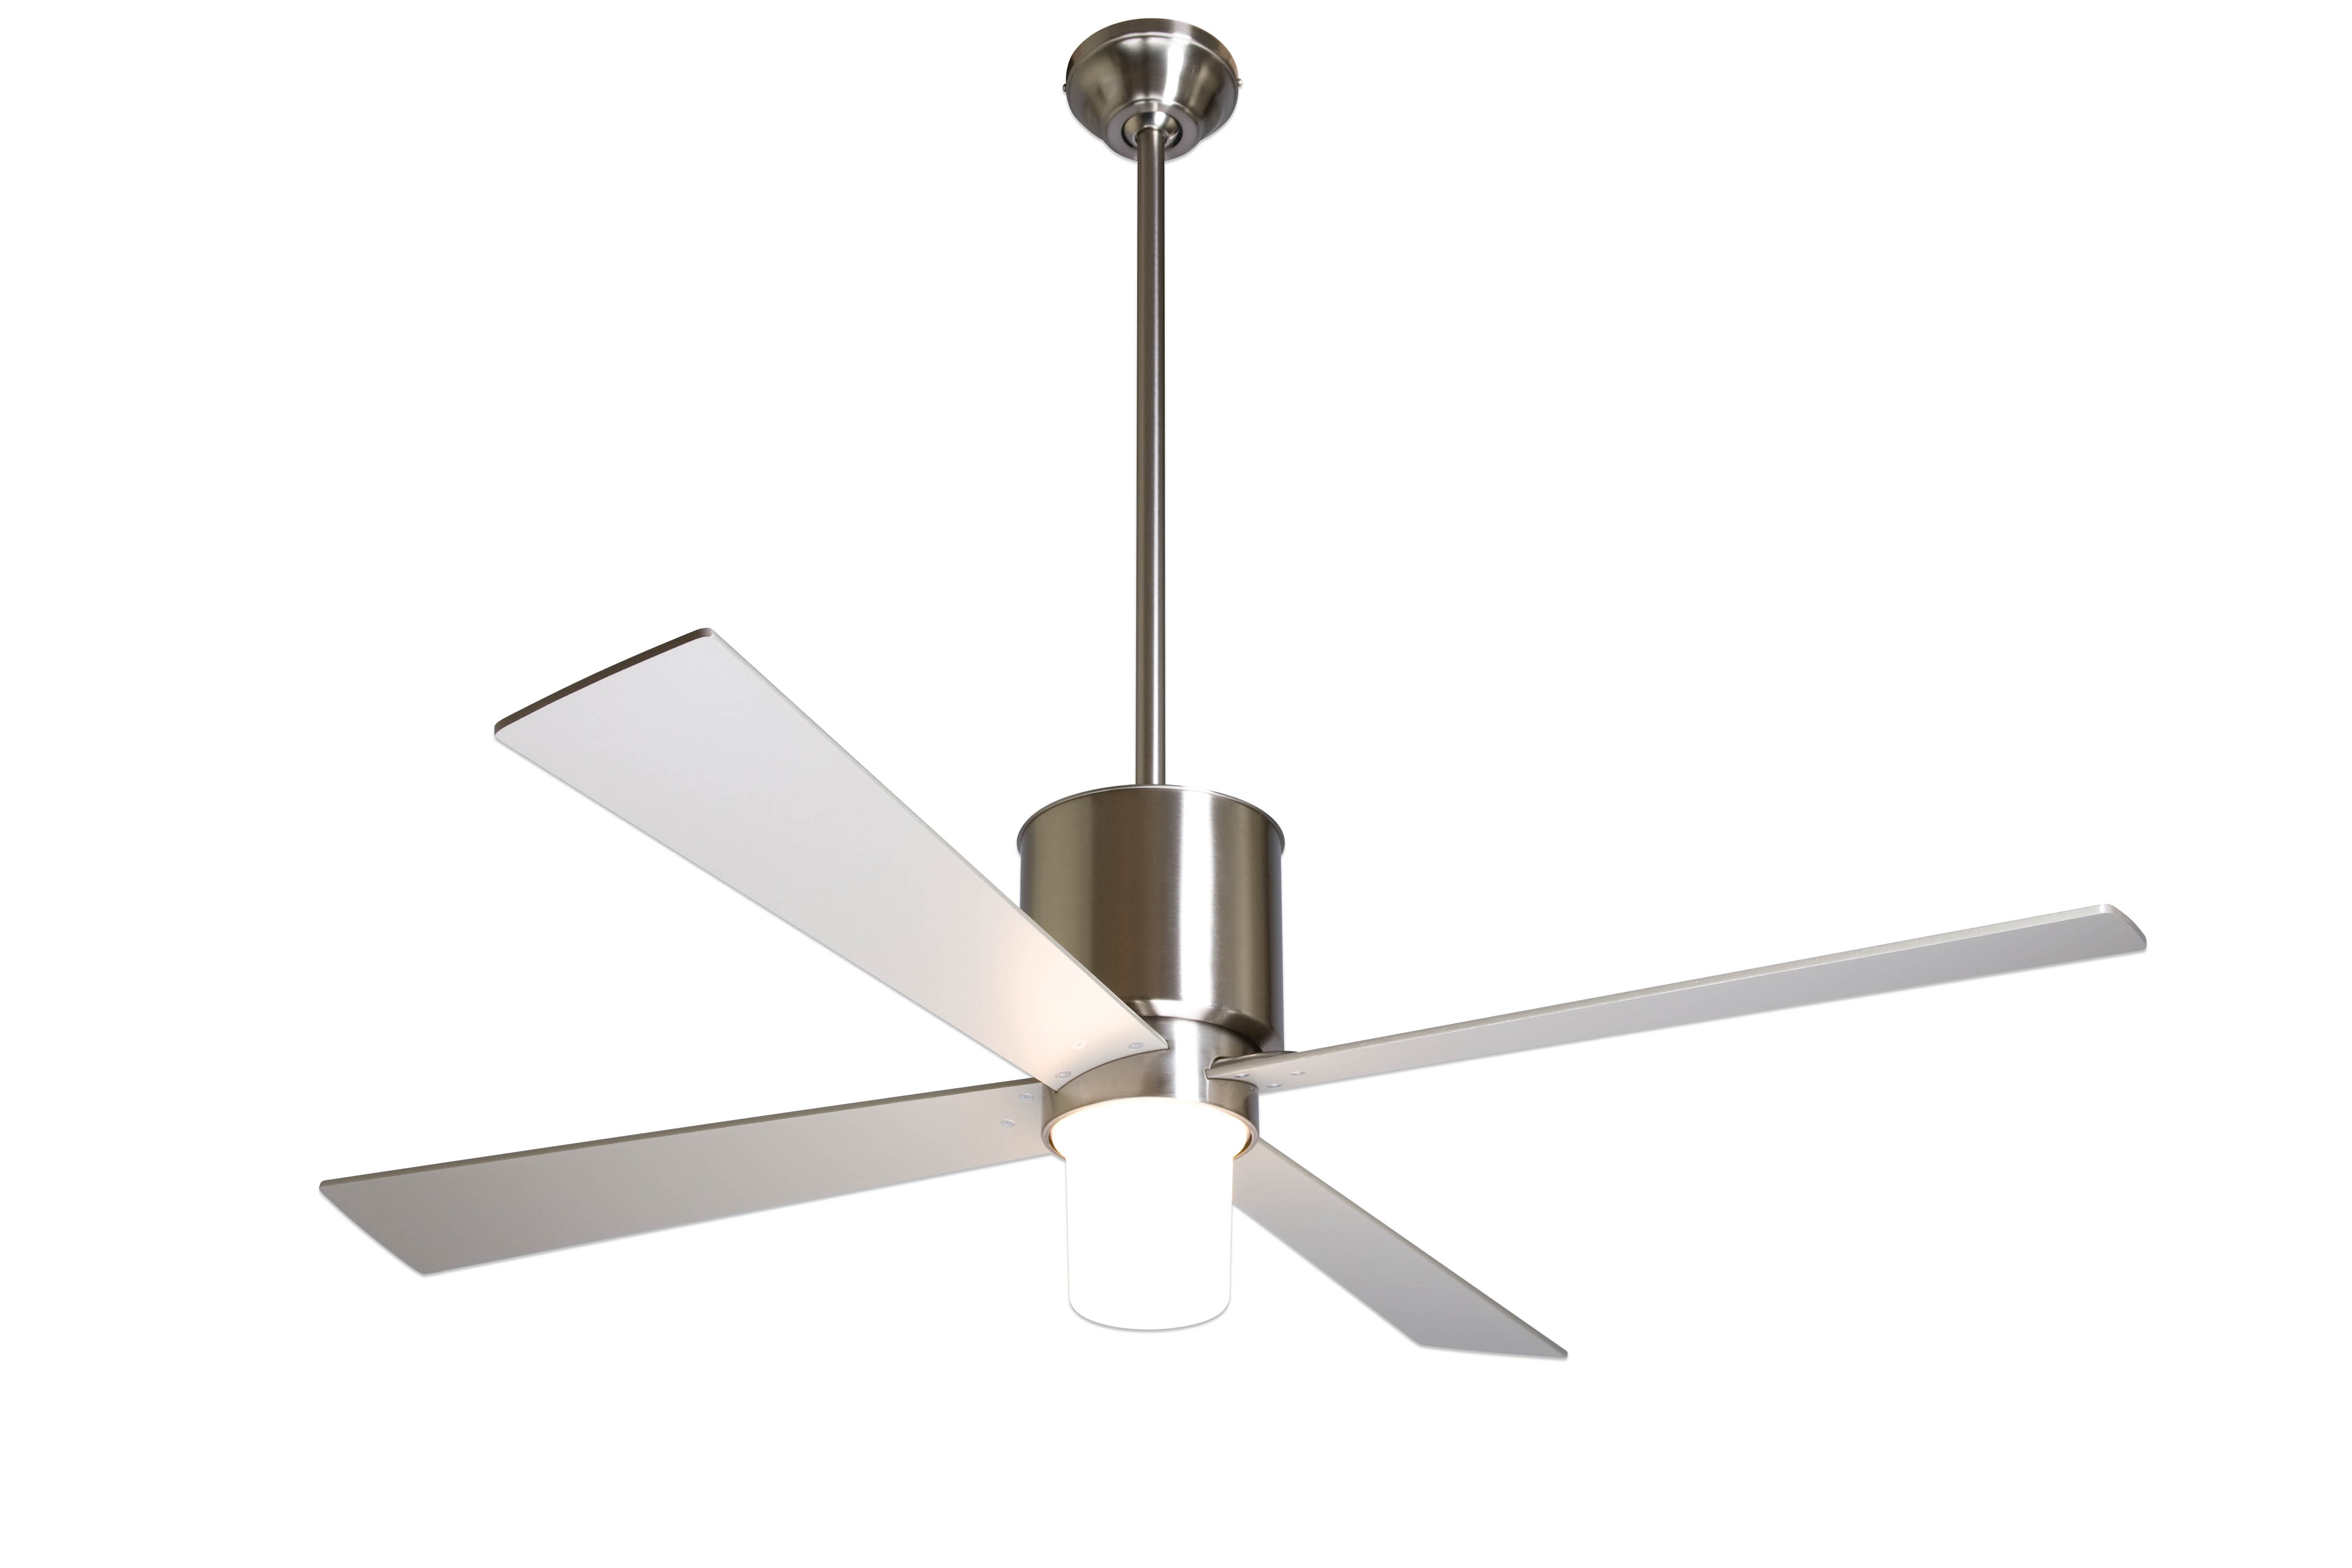 Fresh Modern Machine Age Galvanized Ceiling Fan #18614 Pertaining To Trendy Galvanized Outdoor Ceiling Fans With Light (View 18 of 20)